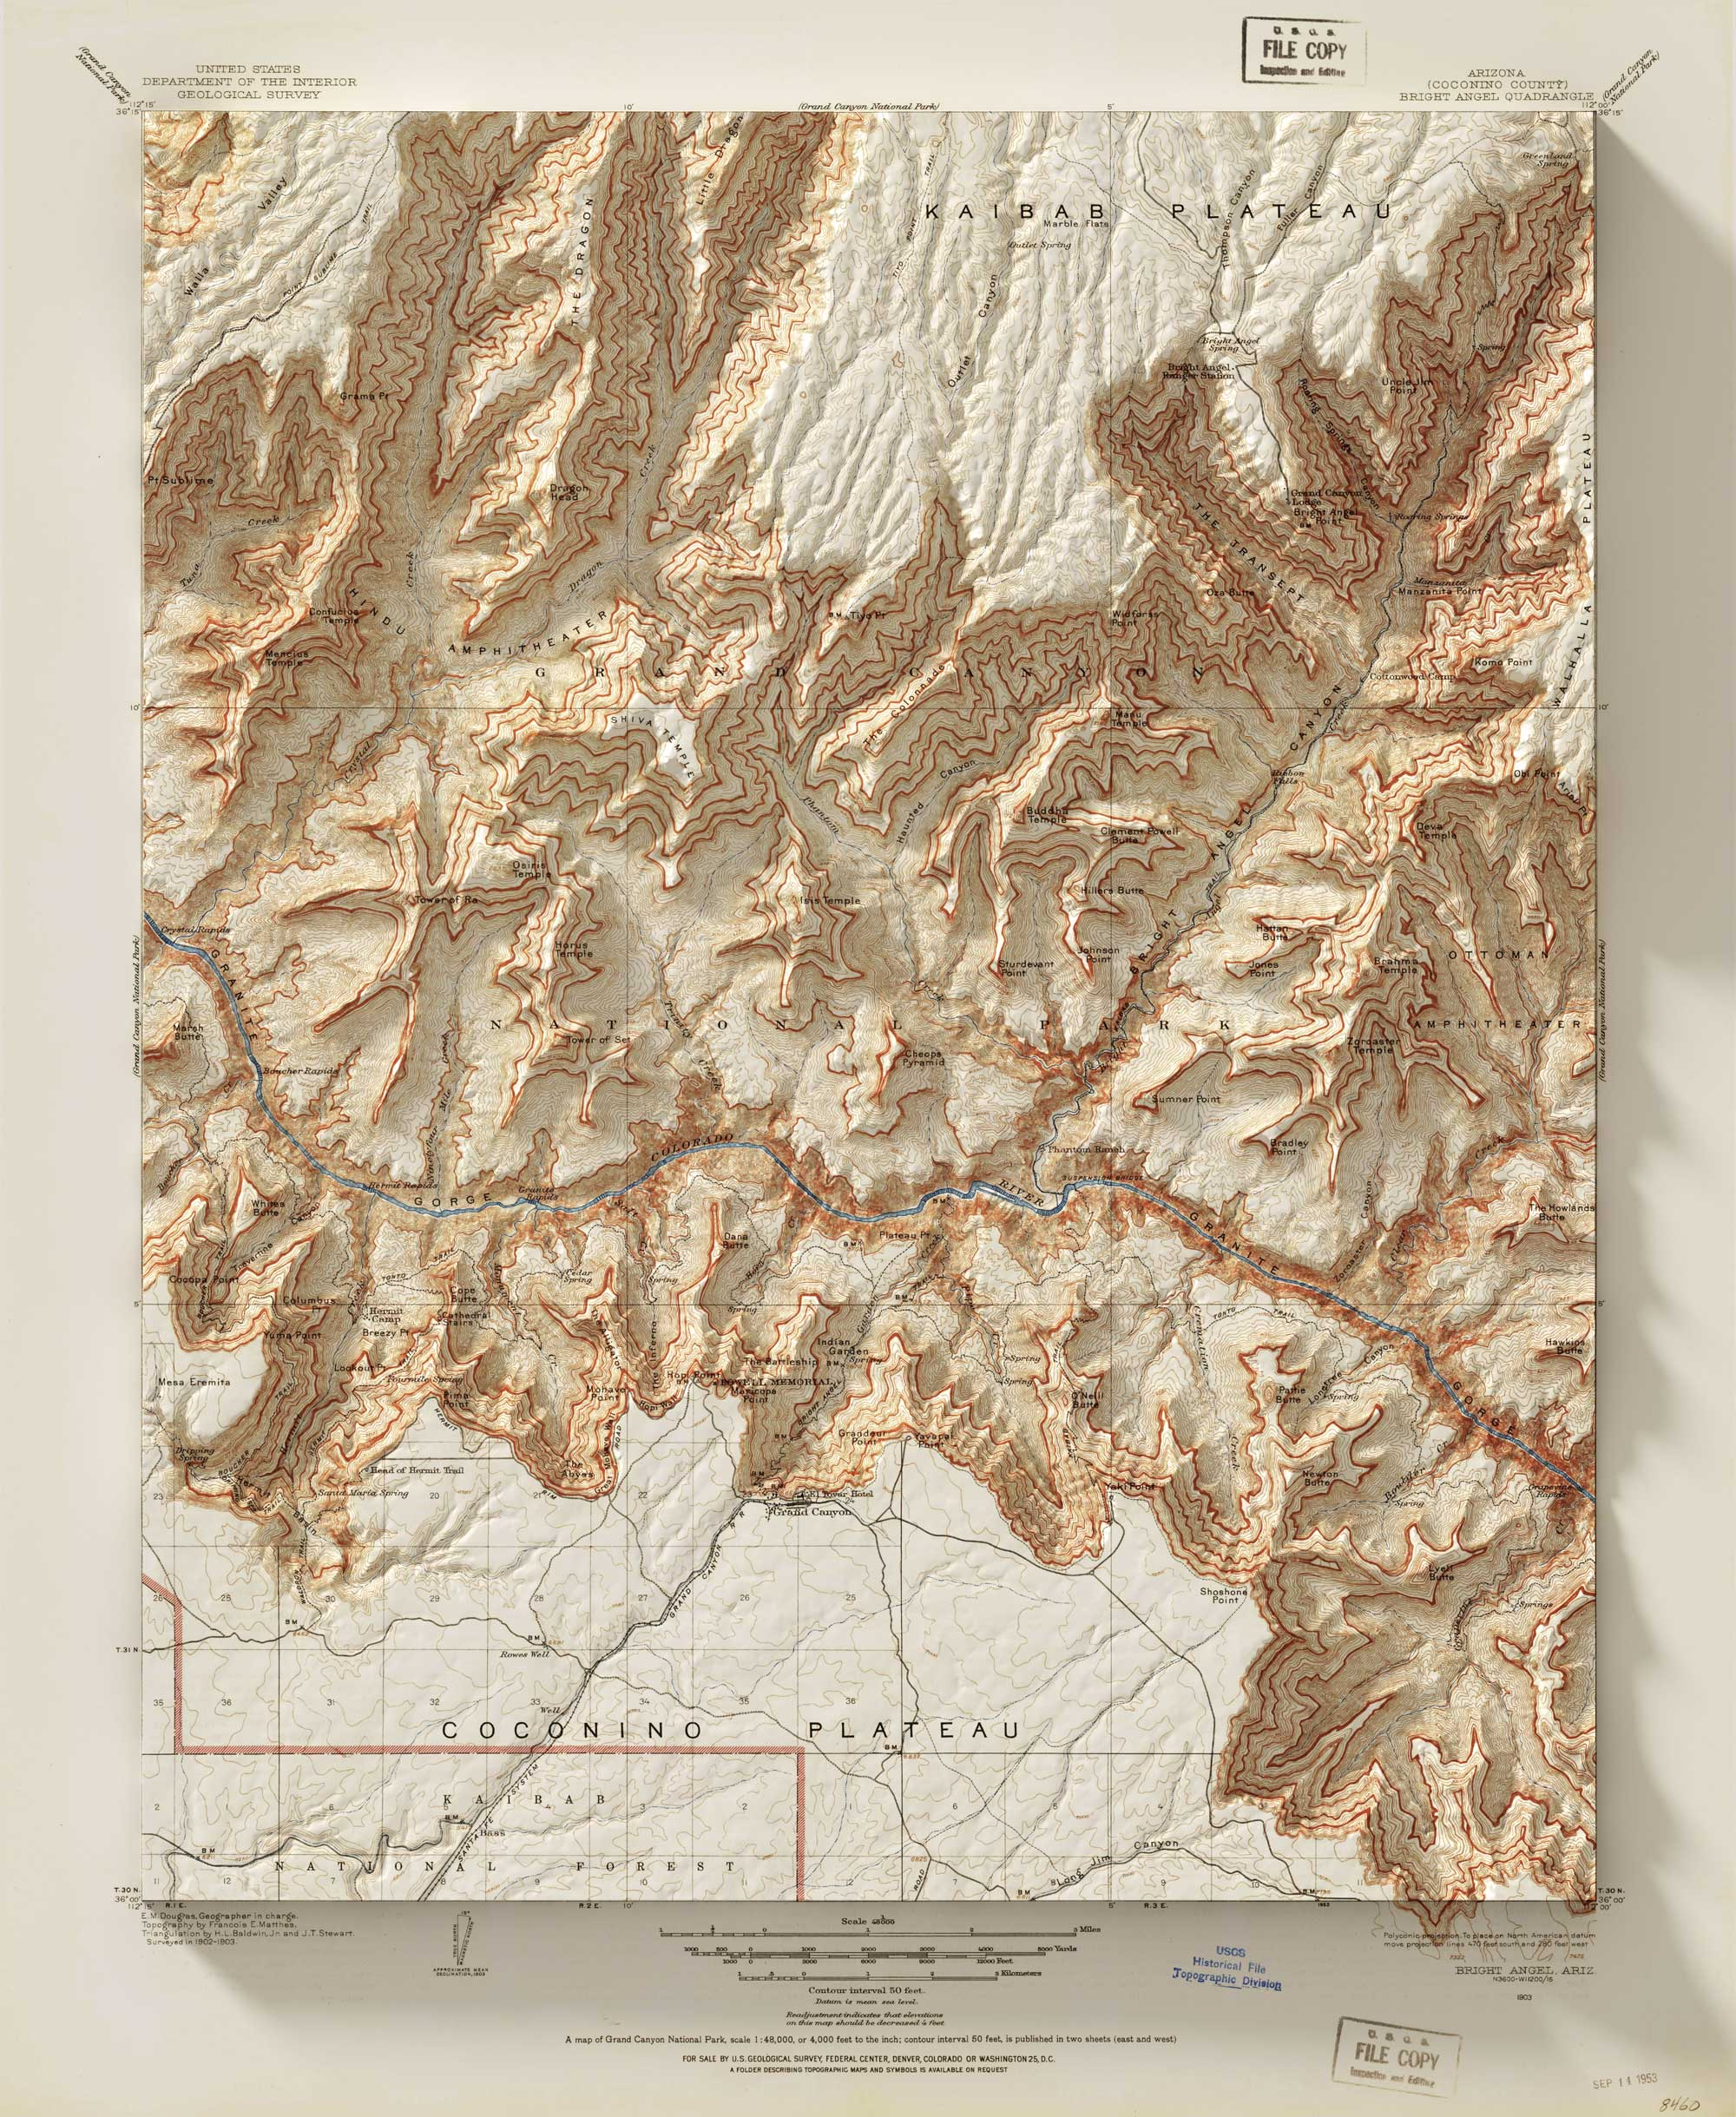 Mapping and Visualization - Scott Reinhard on map of tonto national monument, map of cape breton highlands national park, map of the wasatch mountains, map of colorado, map of quehanna wild area, map of white river national forest, map of san isabel national forest, map of lake mead national recreation area, map of jay cooke state park, map of europe with rivers mountains, map of great sand dunes national park and preserve, map of san juan national forest, map of elk mountain, map of sawtooth national recreation area, map of national parks in oregon, map of chickasaw national recreation area, map of big thicket national preserve, map of gulf islands national seashore, map of browns park national wildlife refuge, map of cedar breaks national monument,